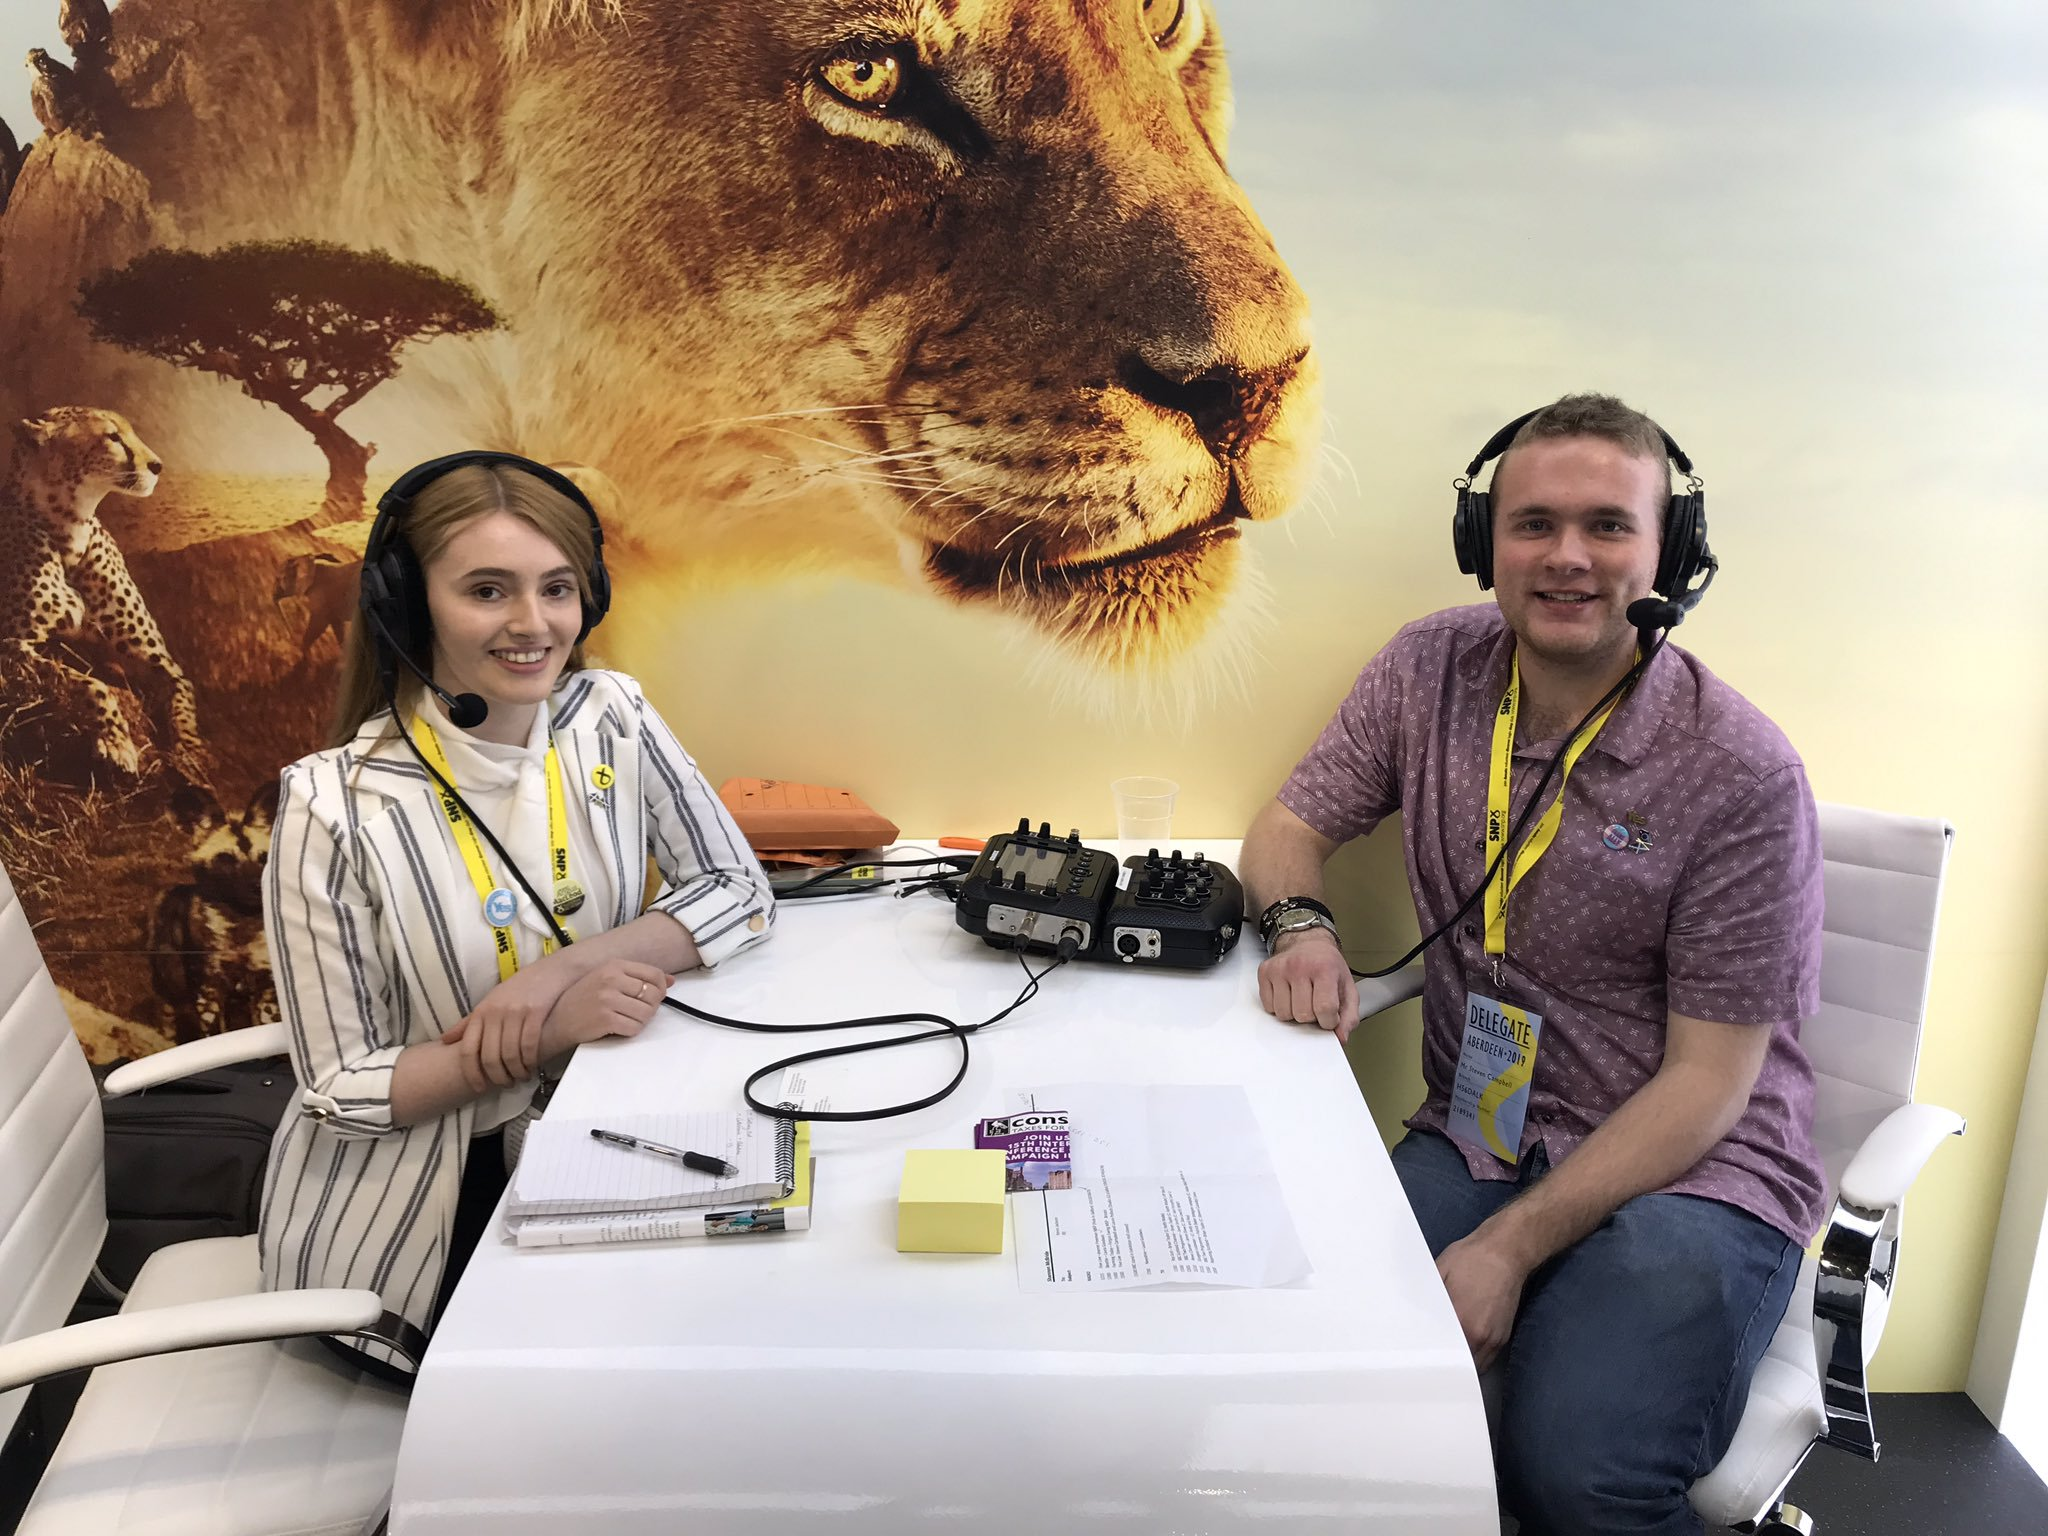 Young SNP duo: 'Liars at BBC ambushed us on live radio'